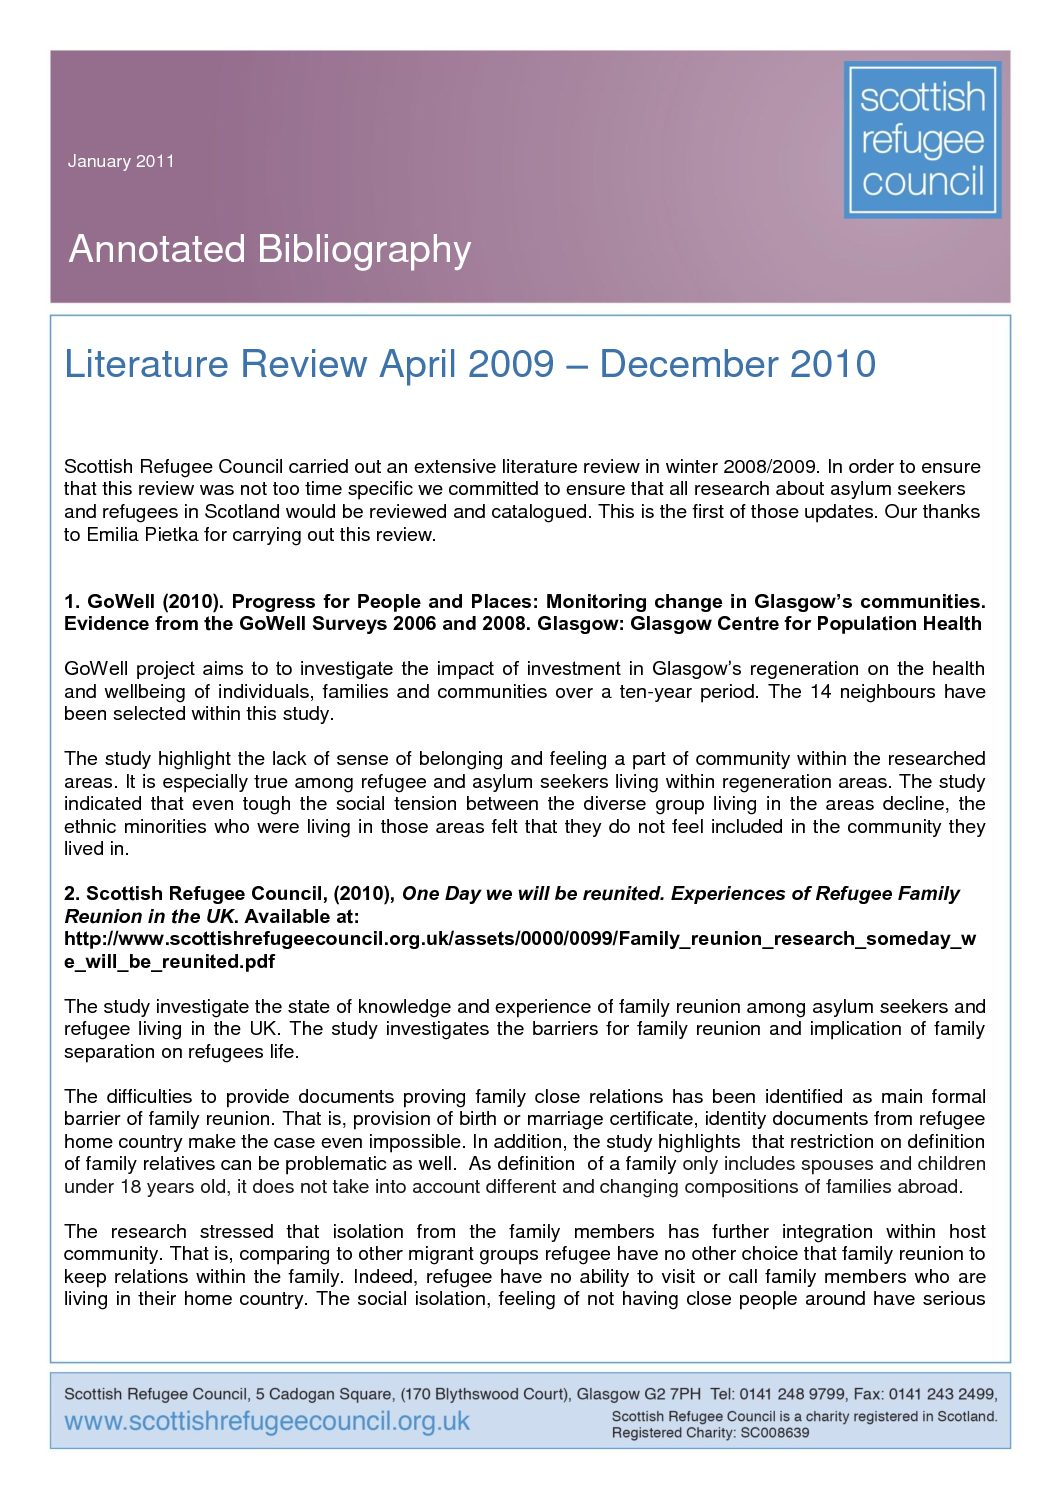 Literature-review-updated-pdf